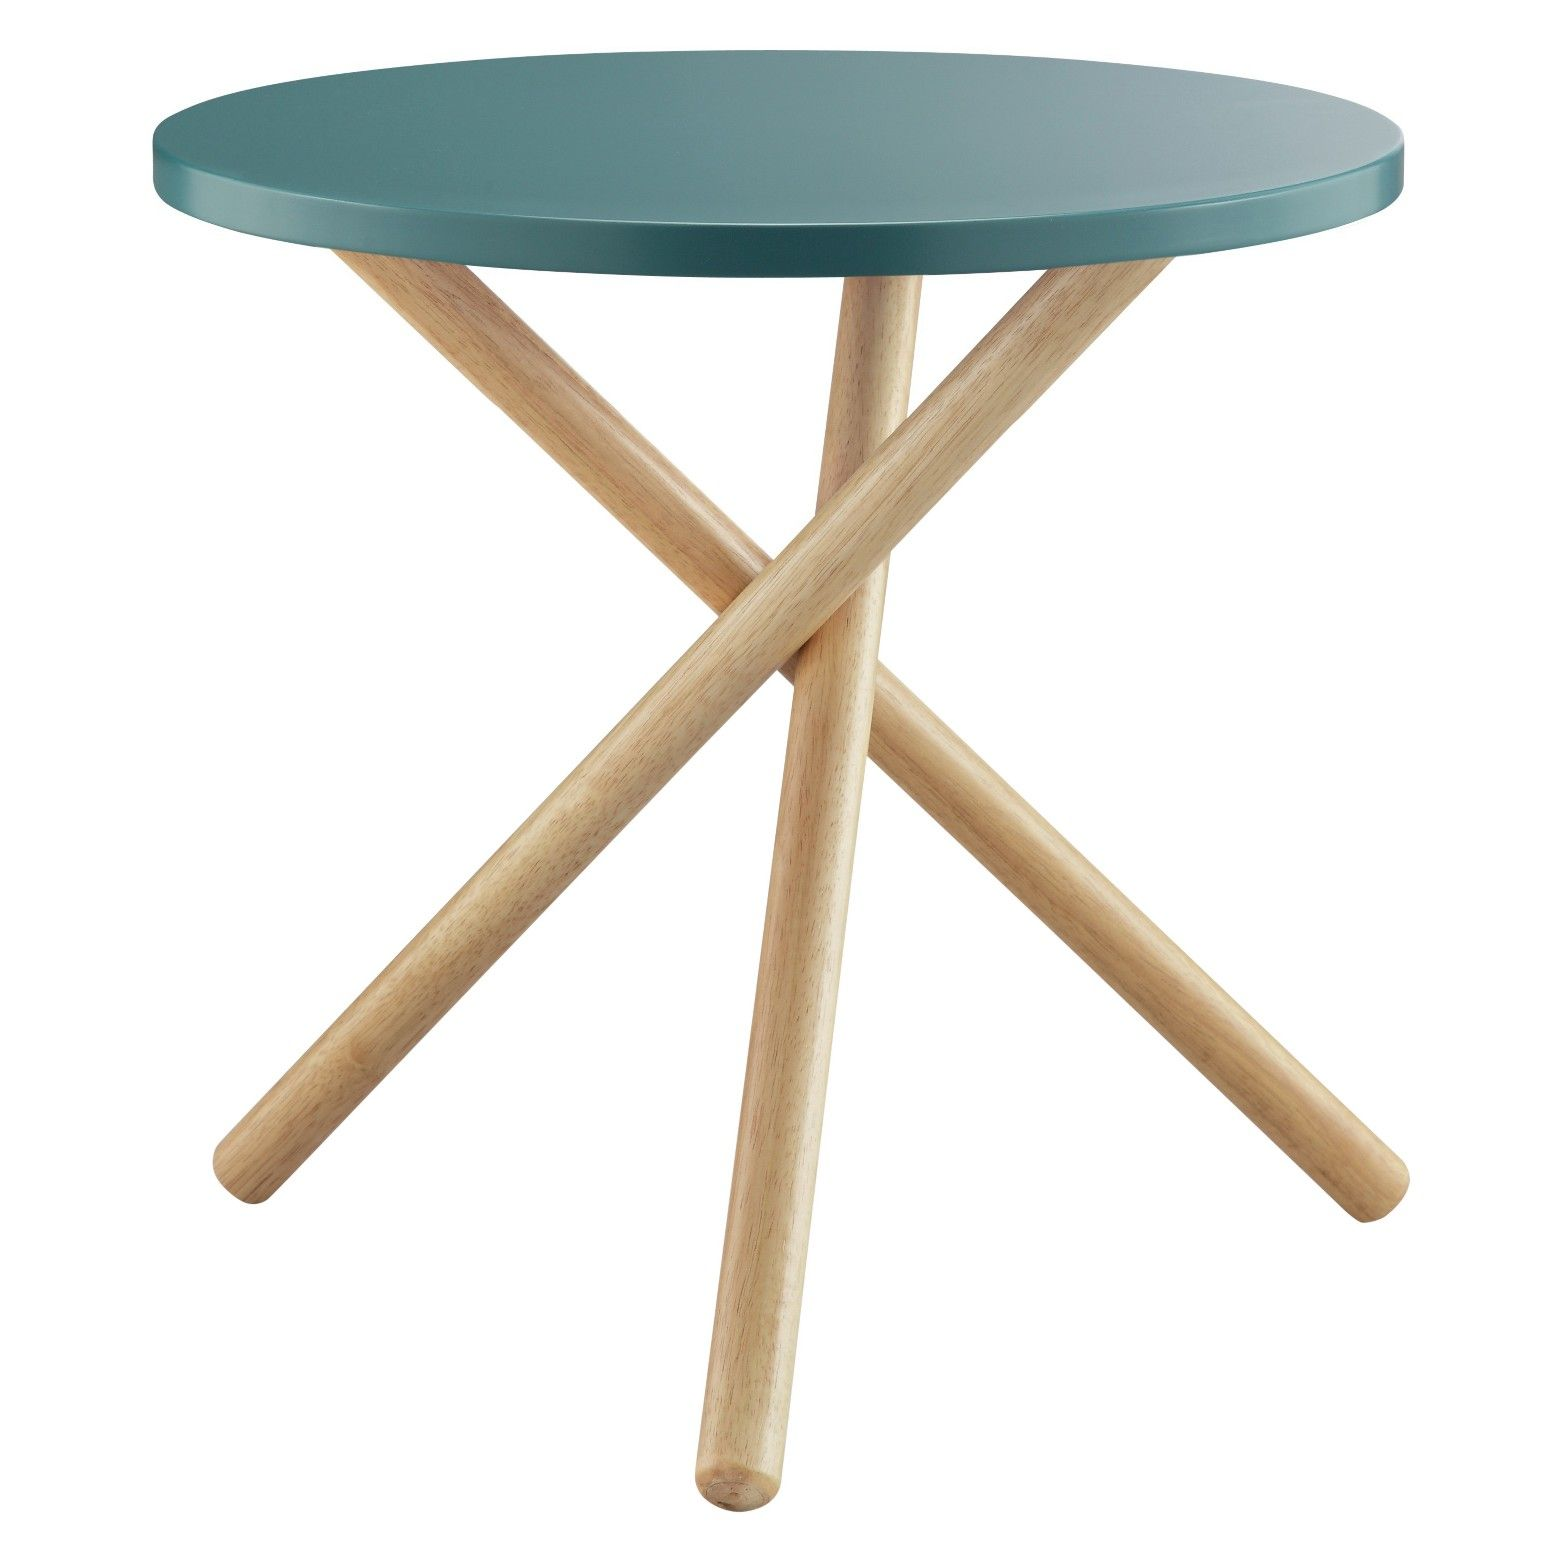 end table teal blue accent tables and target piece patio dining set white umbrella folding nic hammered metal coffee small designer tall with stools pendant lighting american drew